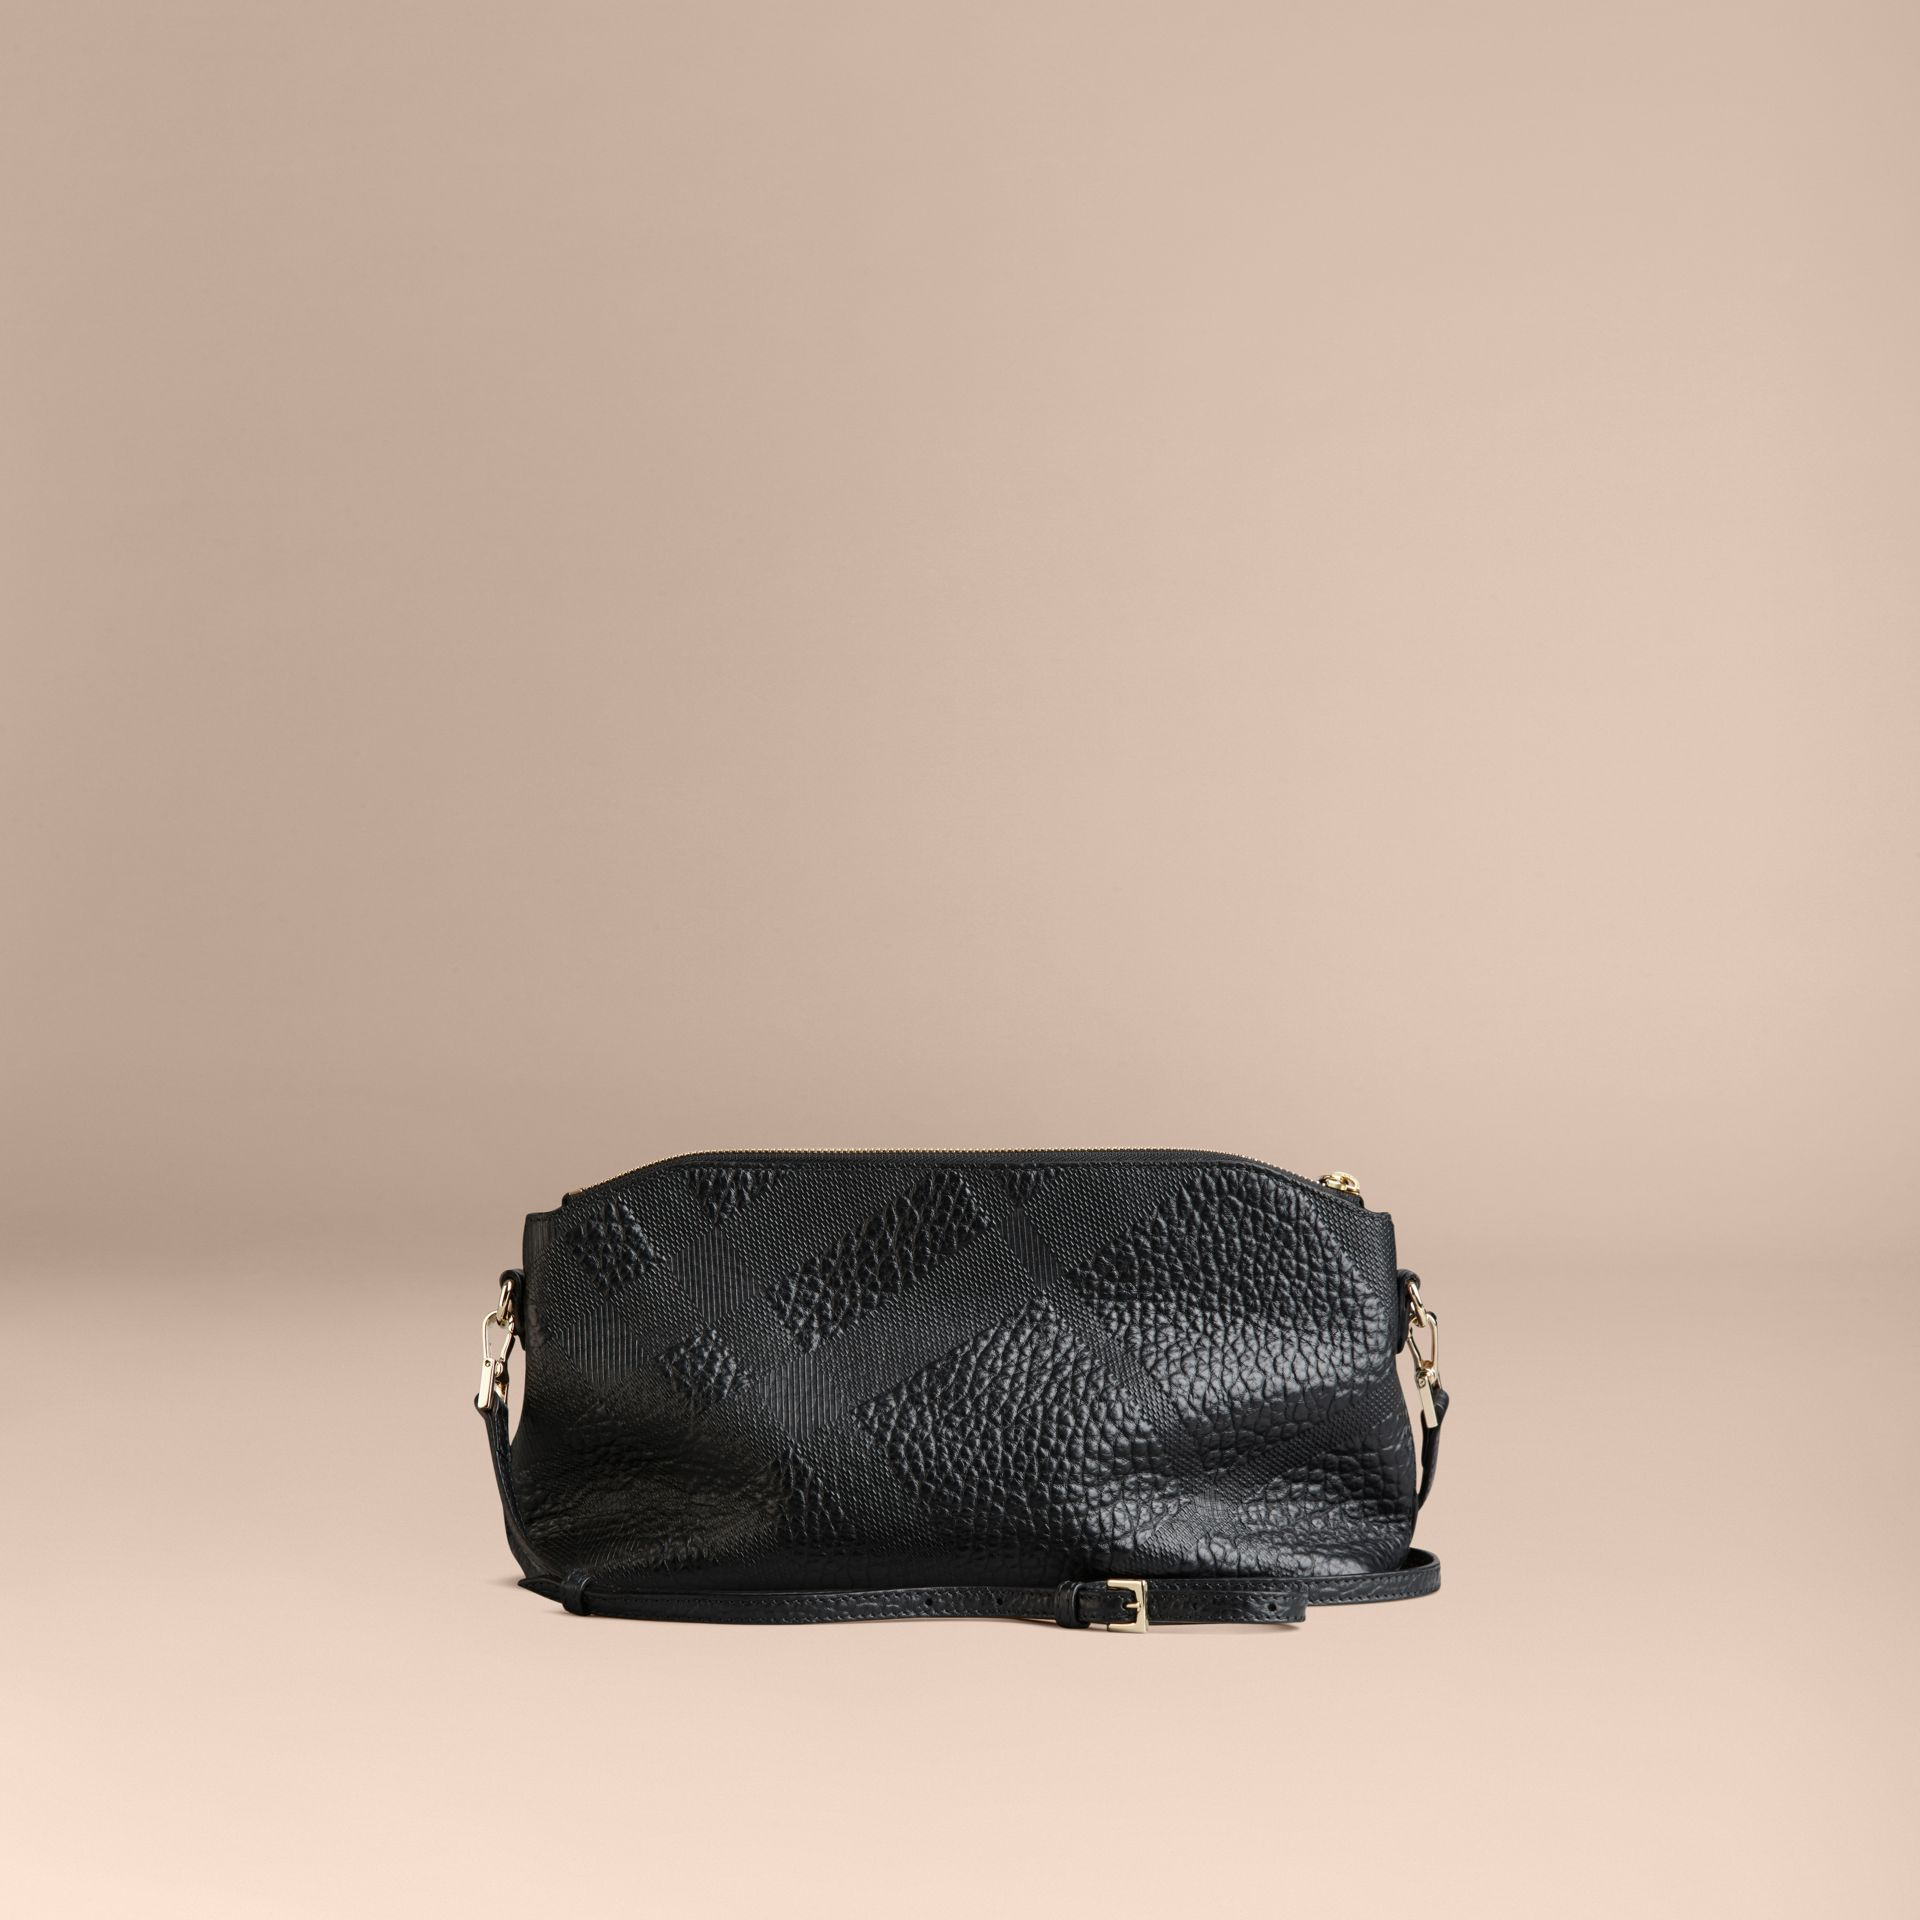 Small Embossed Check Leather Clutch Bag Black - gallery image 4